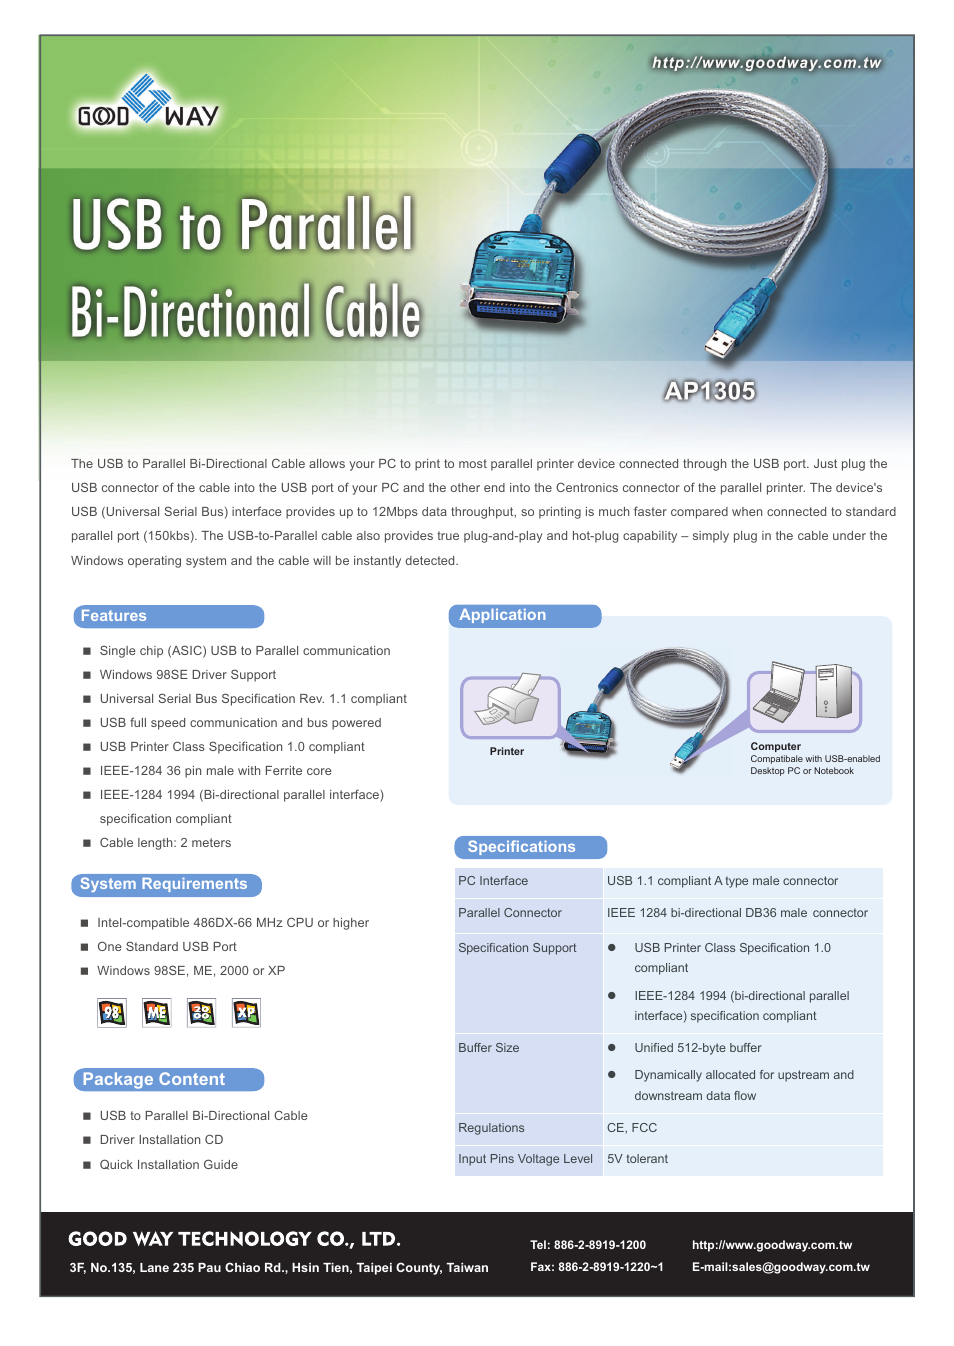 Good Way Tech Usb To Parallel Bi Directional Cable Ap1305 User